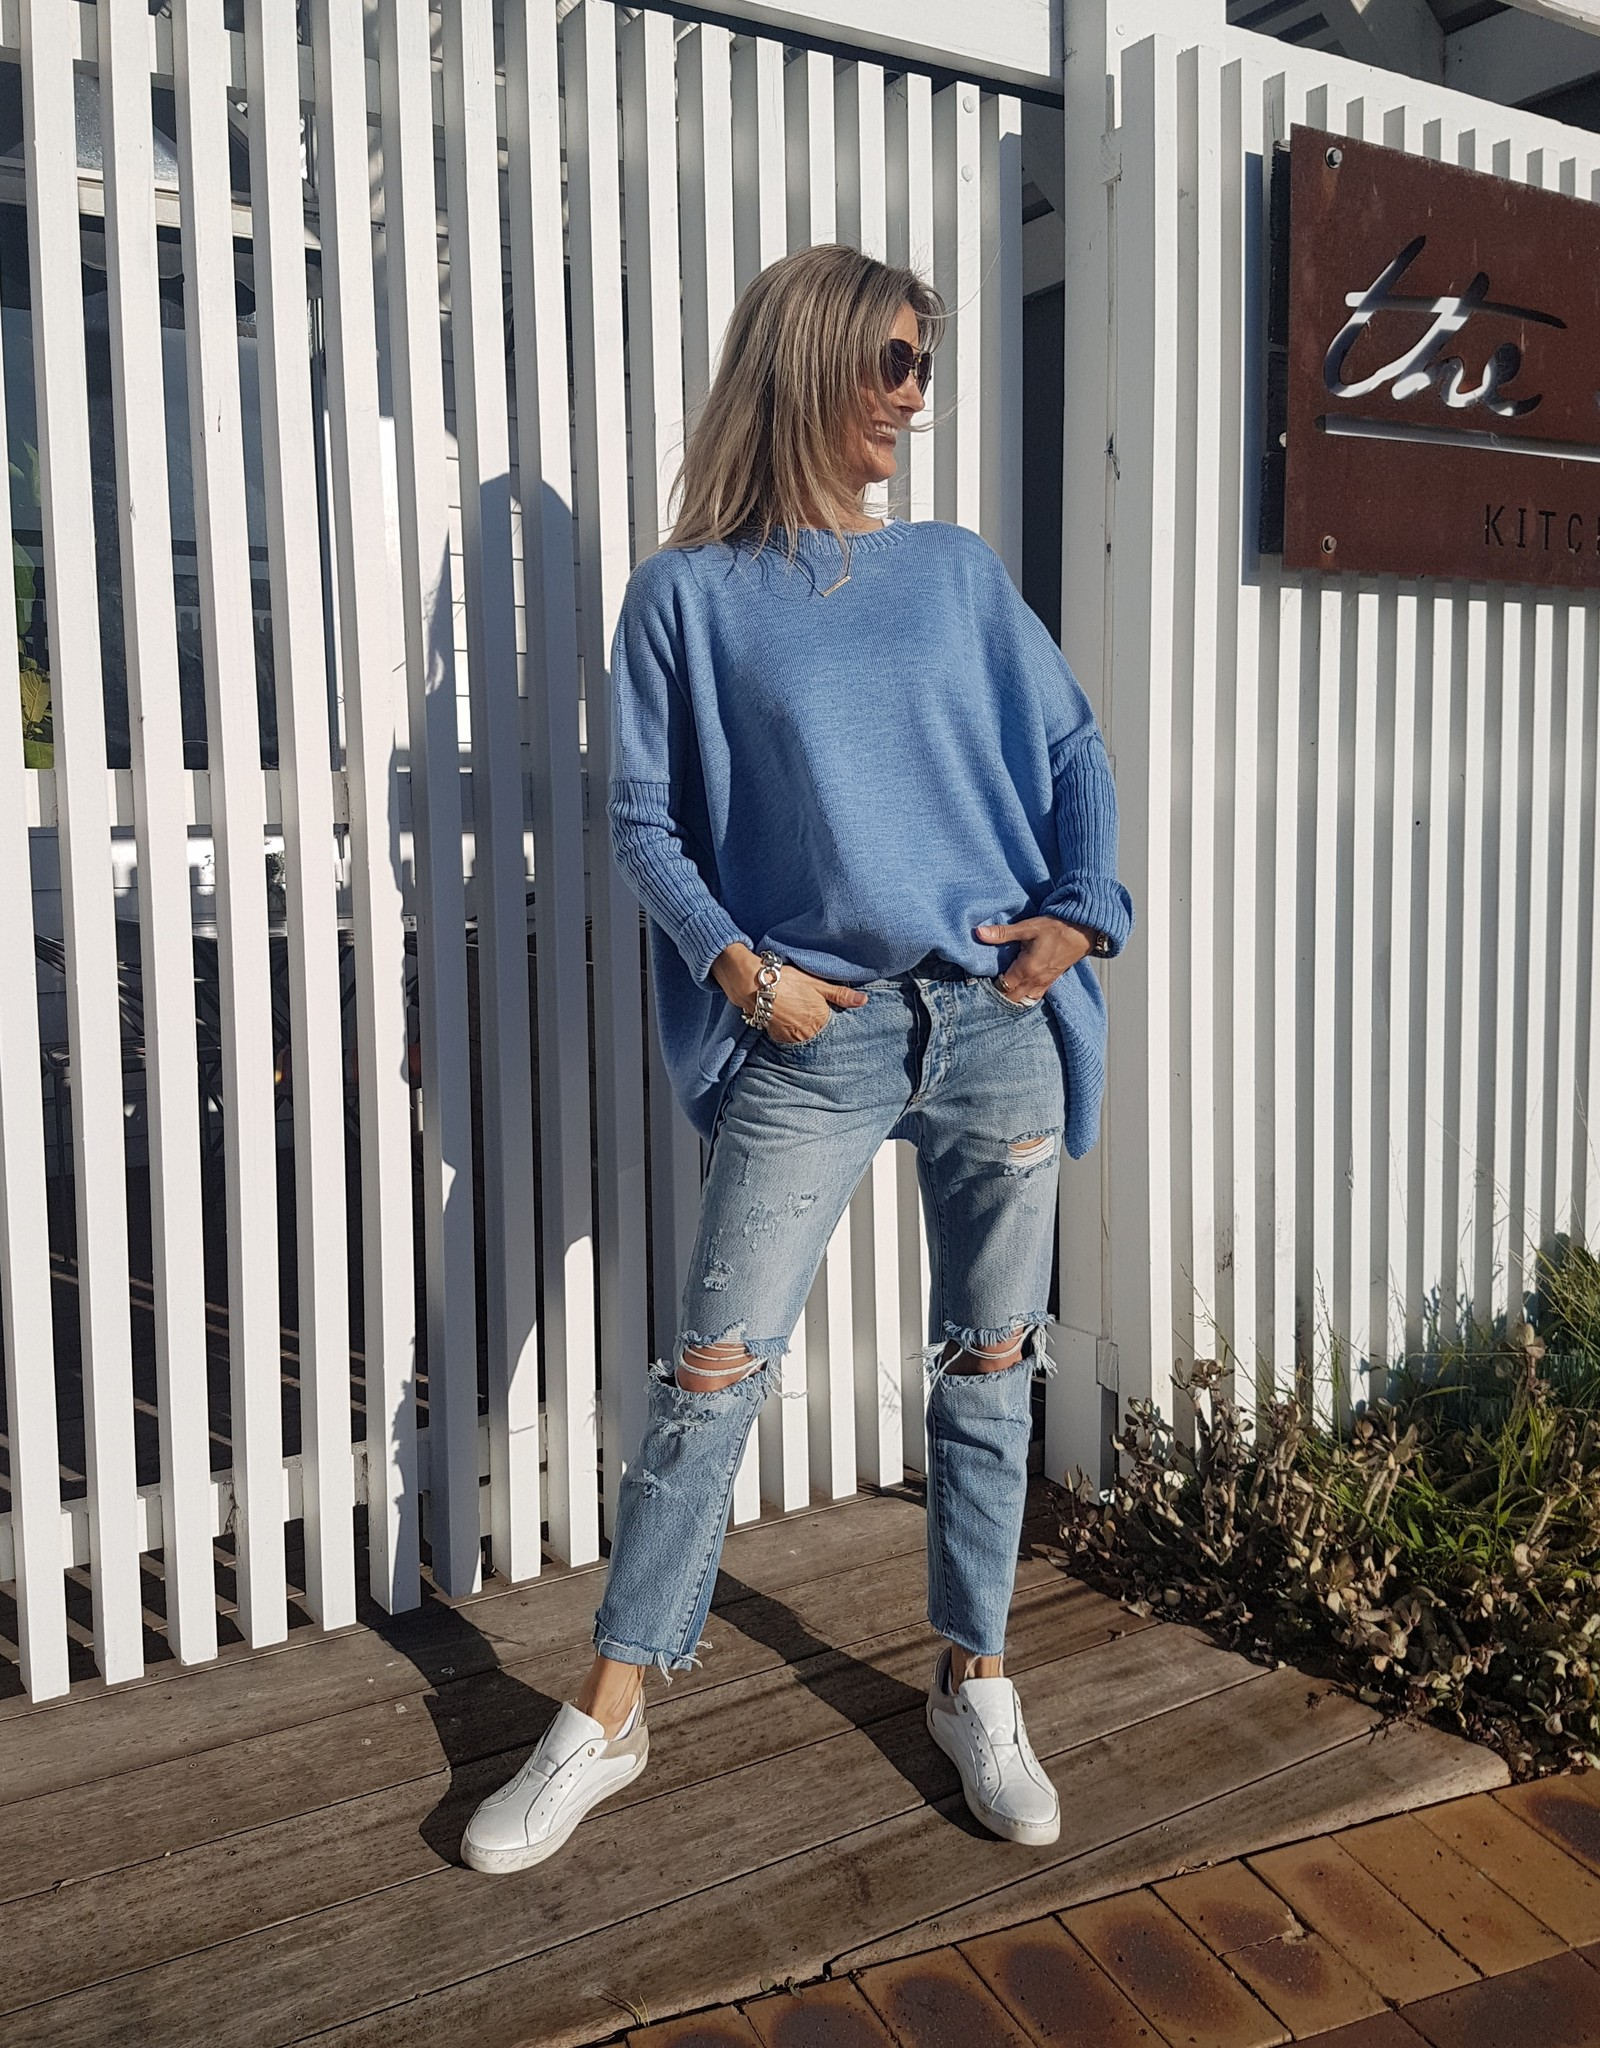 THE KNIT STUDIO MERINO SPLIT CREW NECK BLUE